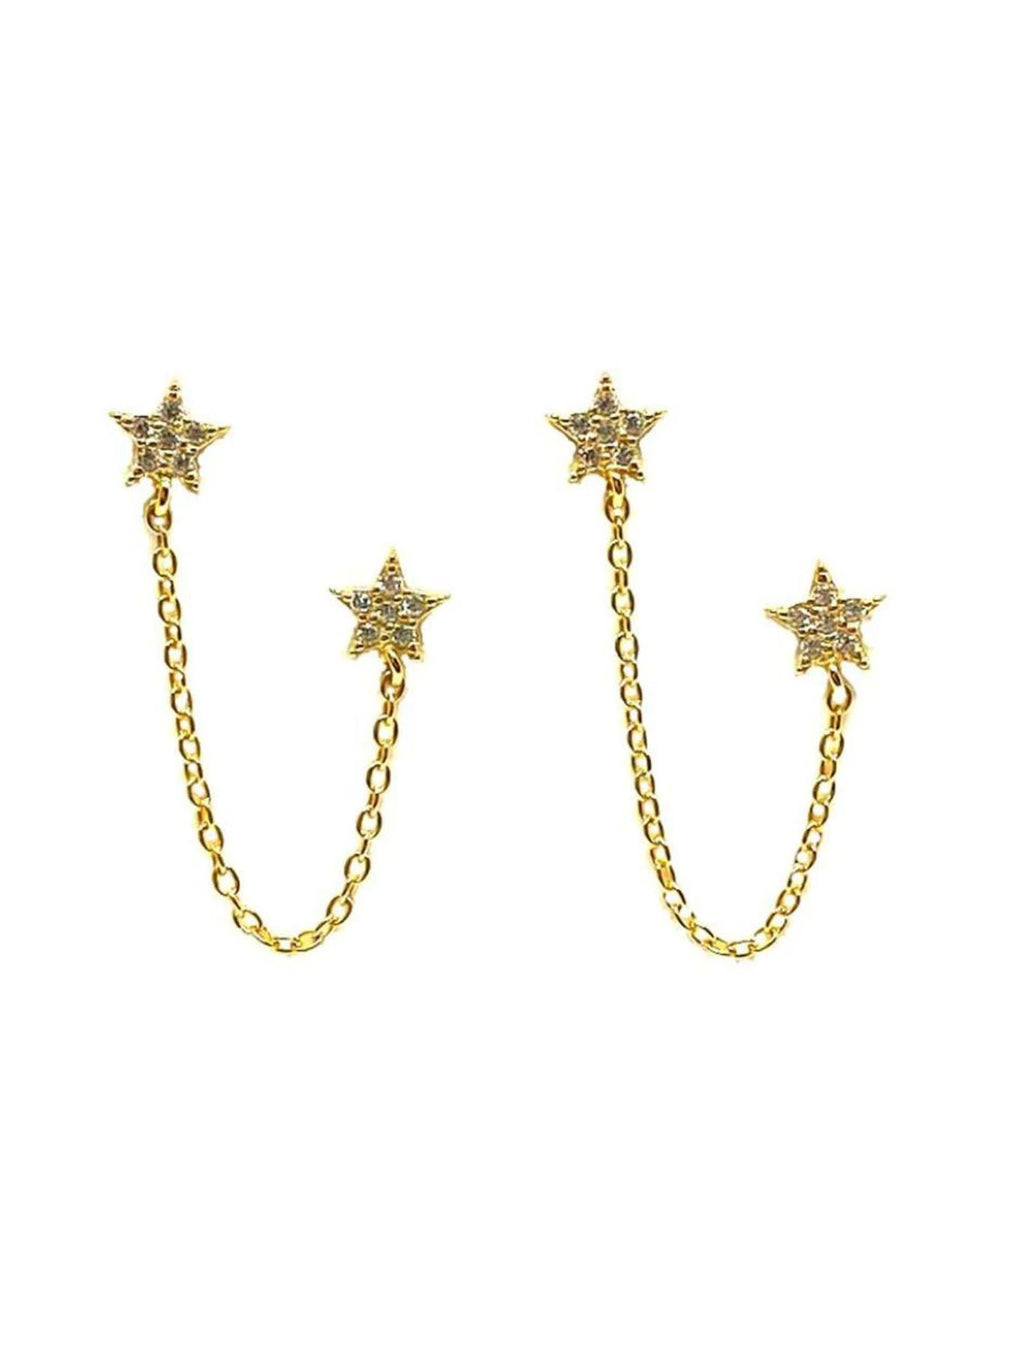 Athena Designs Double Star Earring With Chain in Gold